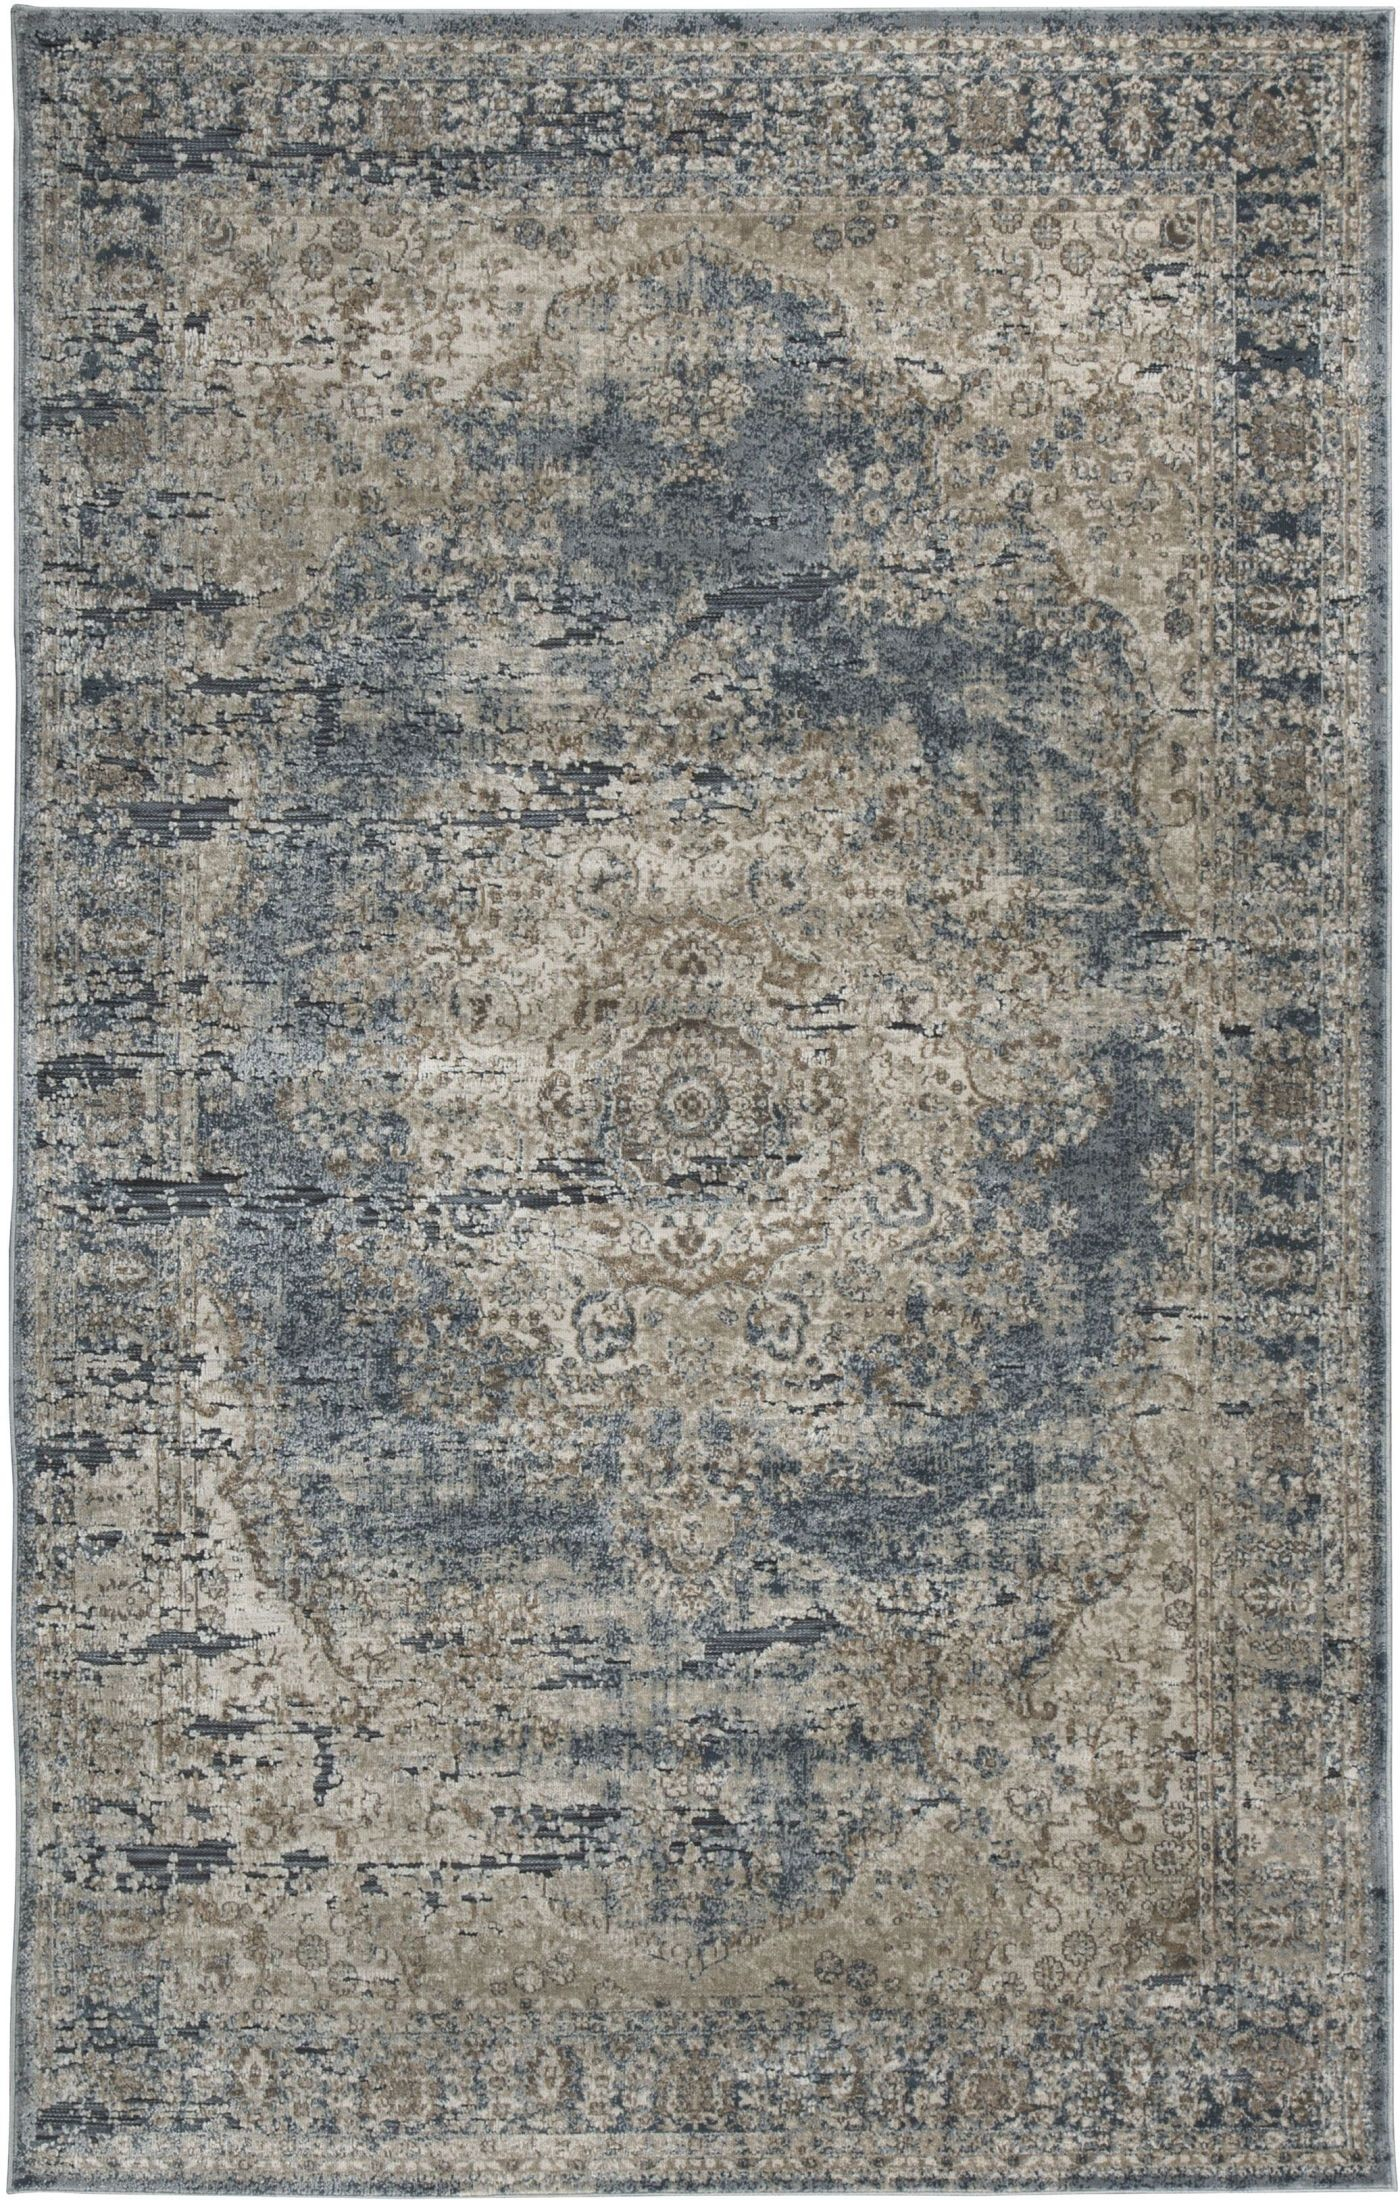 South Blue And Tan Large Rug From Ashley Coleman Furniture